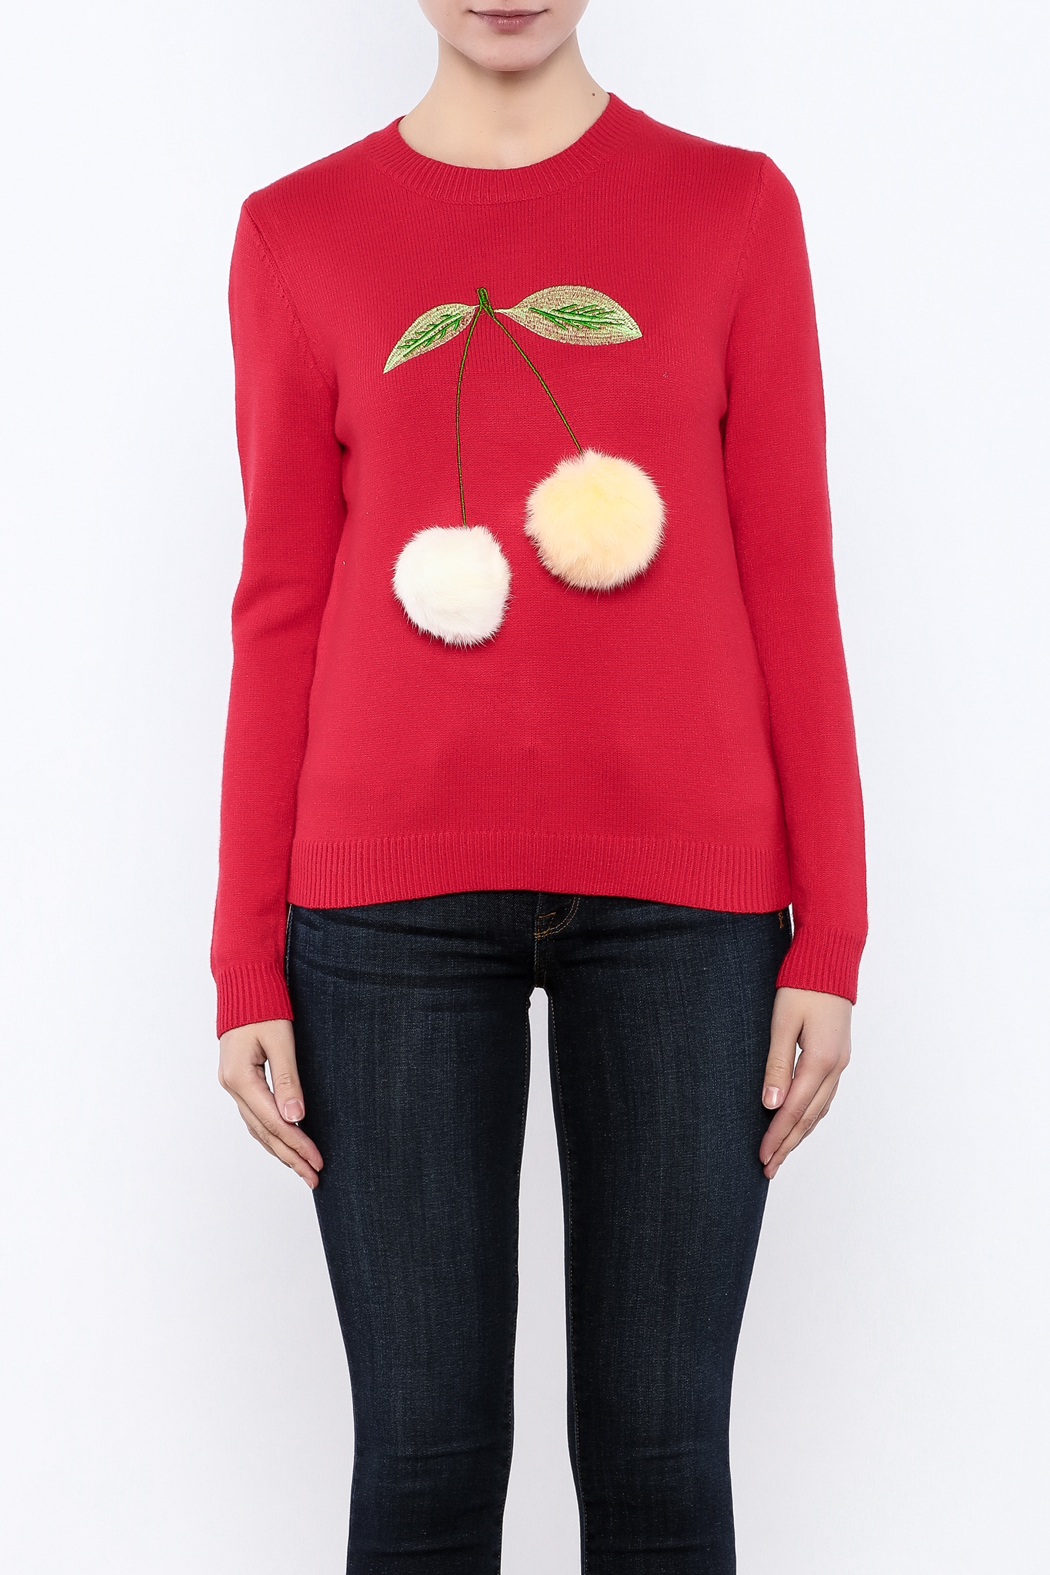 THINK CLOSET Cherry-POM sweater - Side Cropped Image